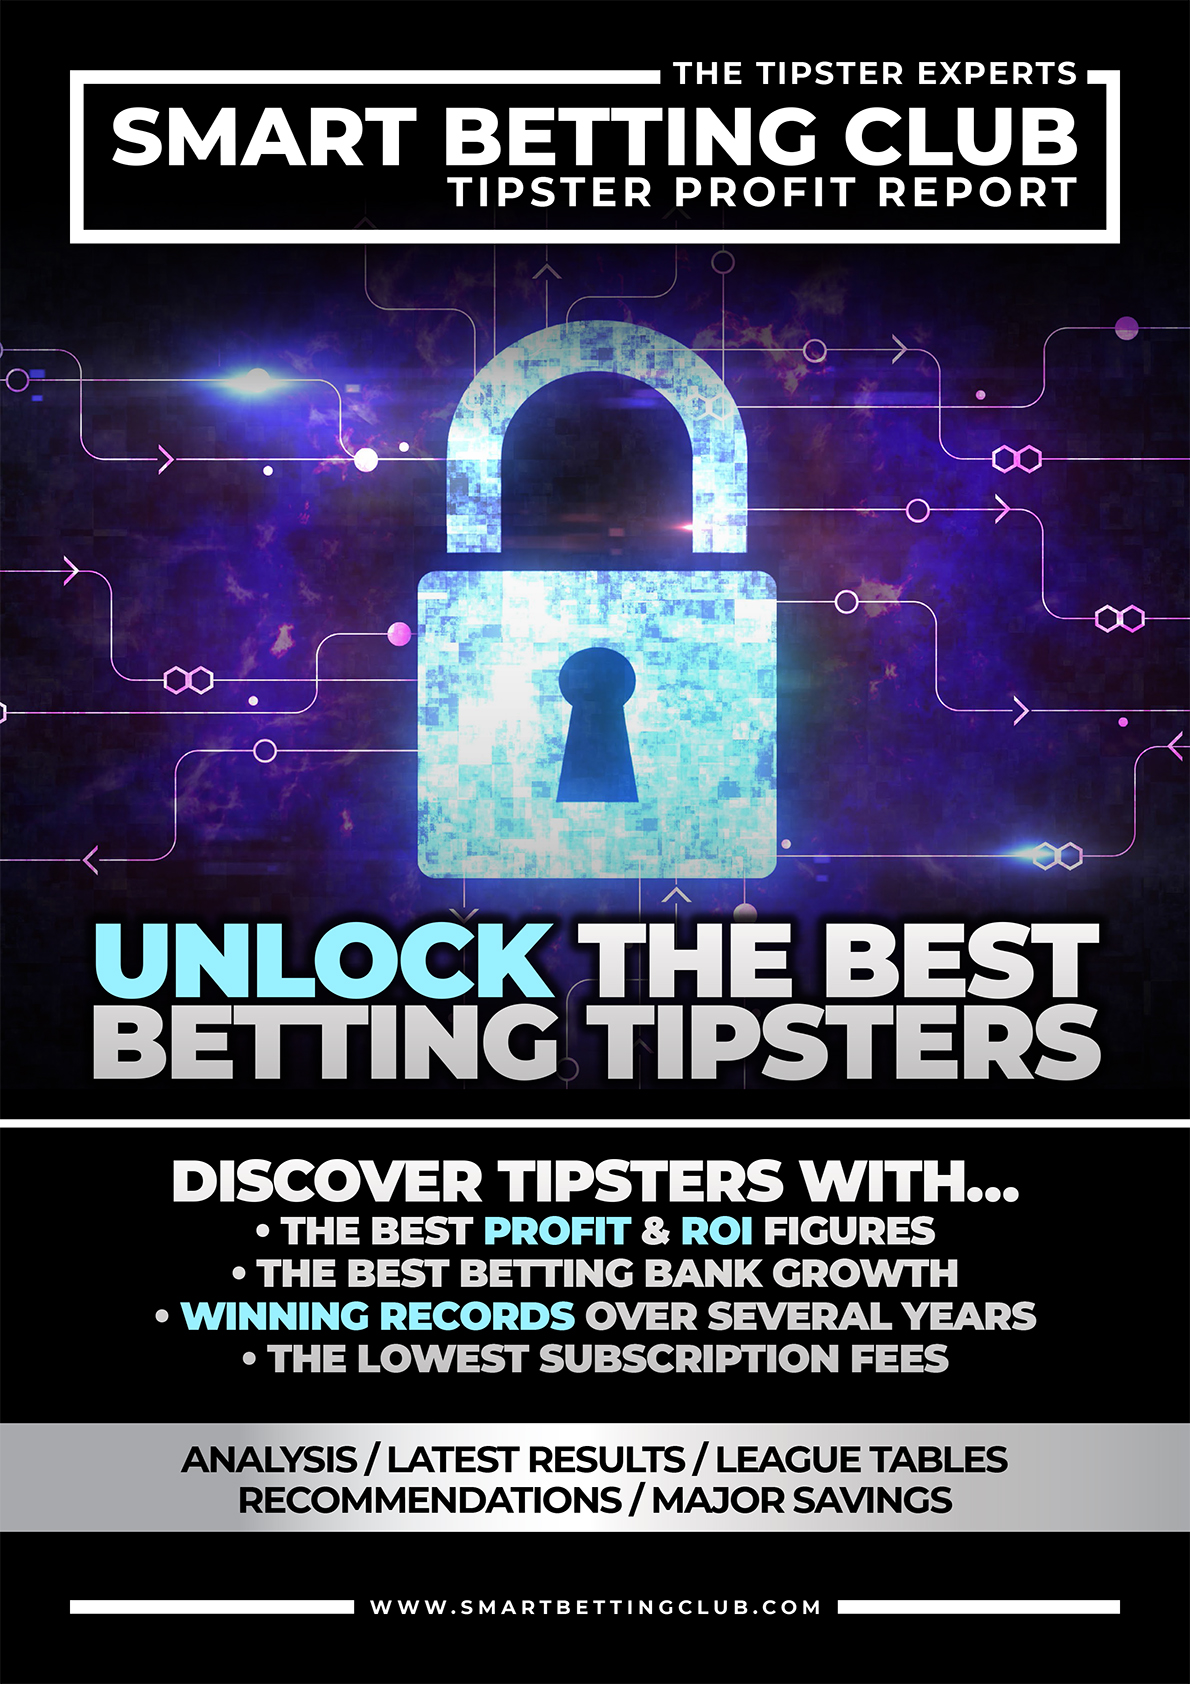 The Tipster Experts: Smart Betting Club  100% Independent